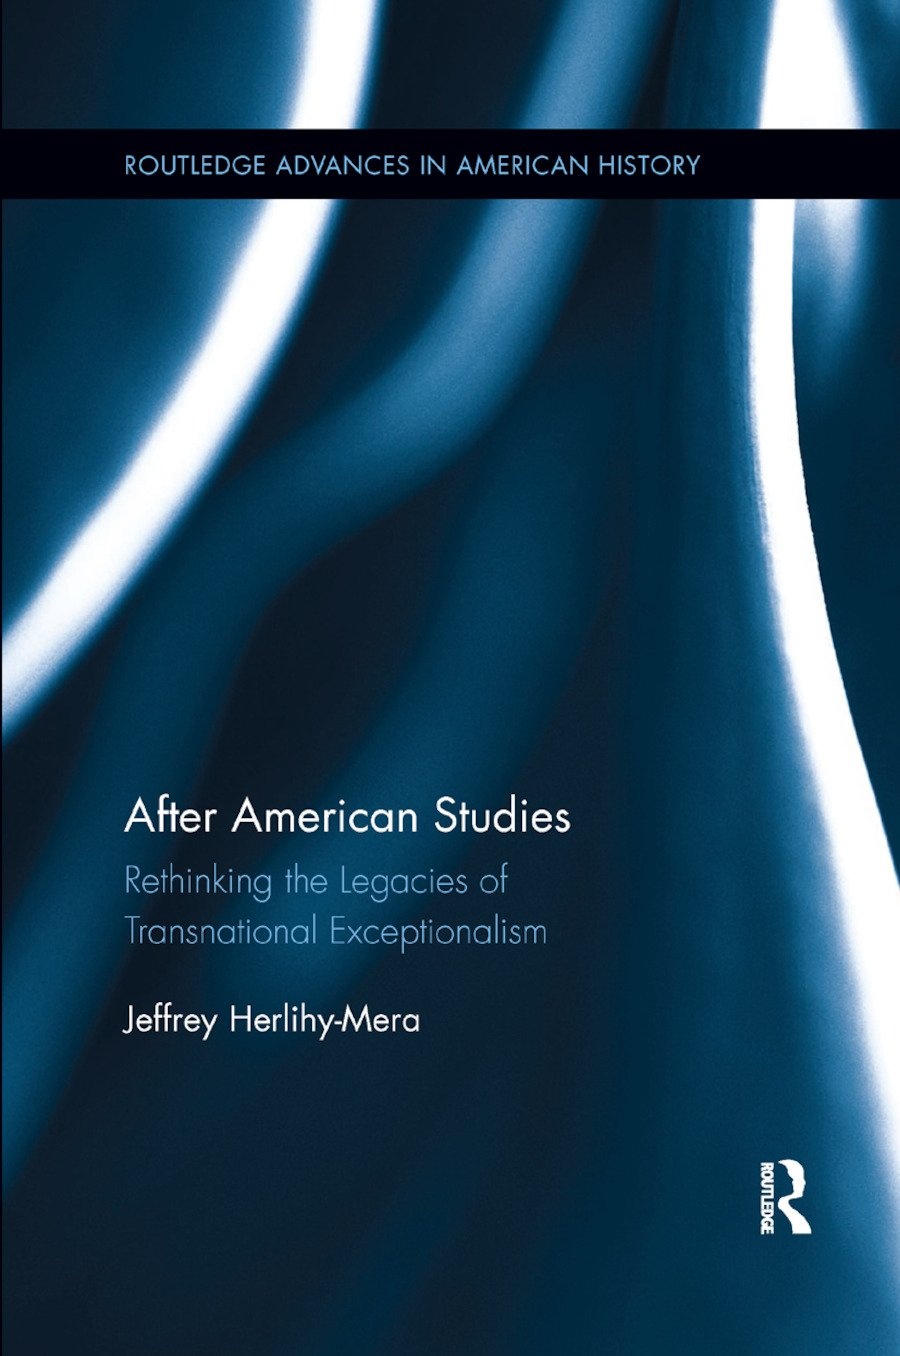 After American Studies: Rethinking the Legacies of Transnational Exceptionalism book cover